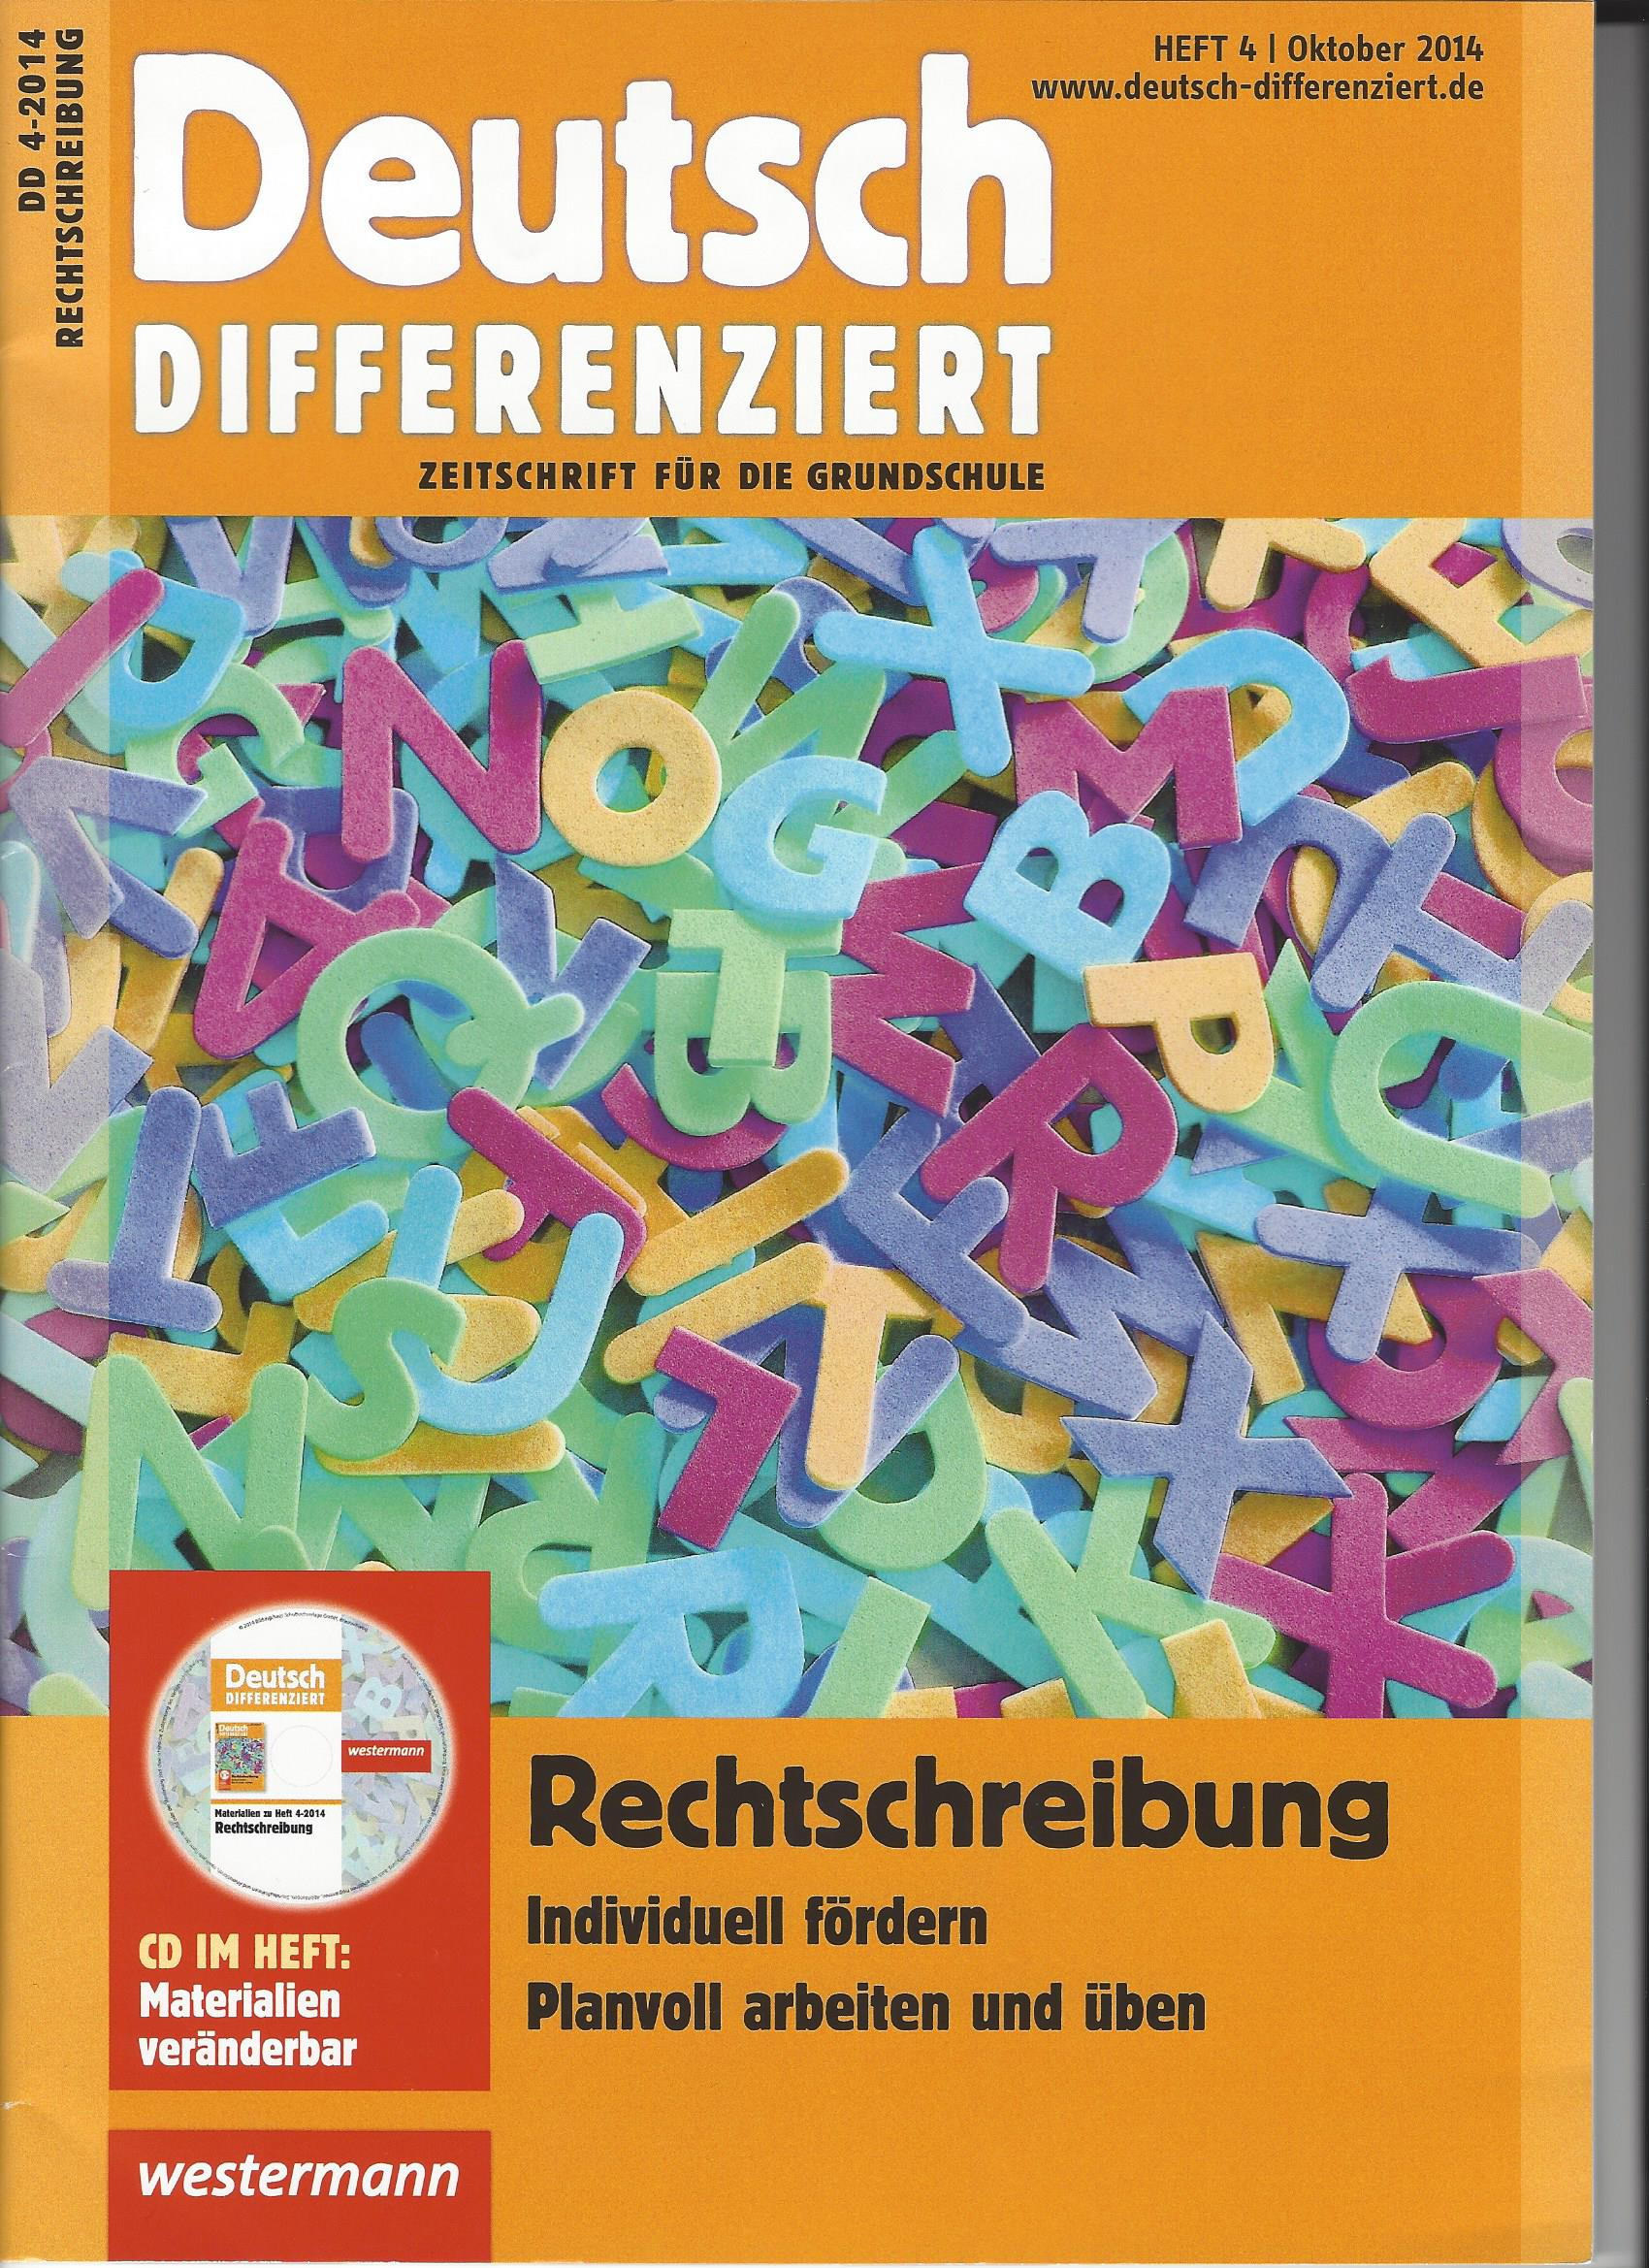 deutsch-differenziert-4-2014